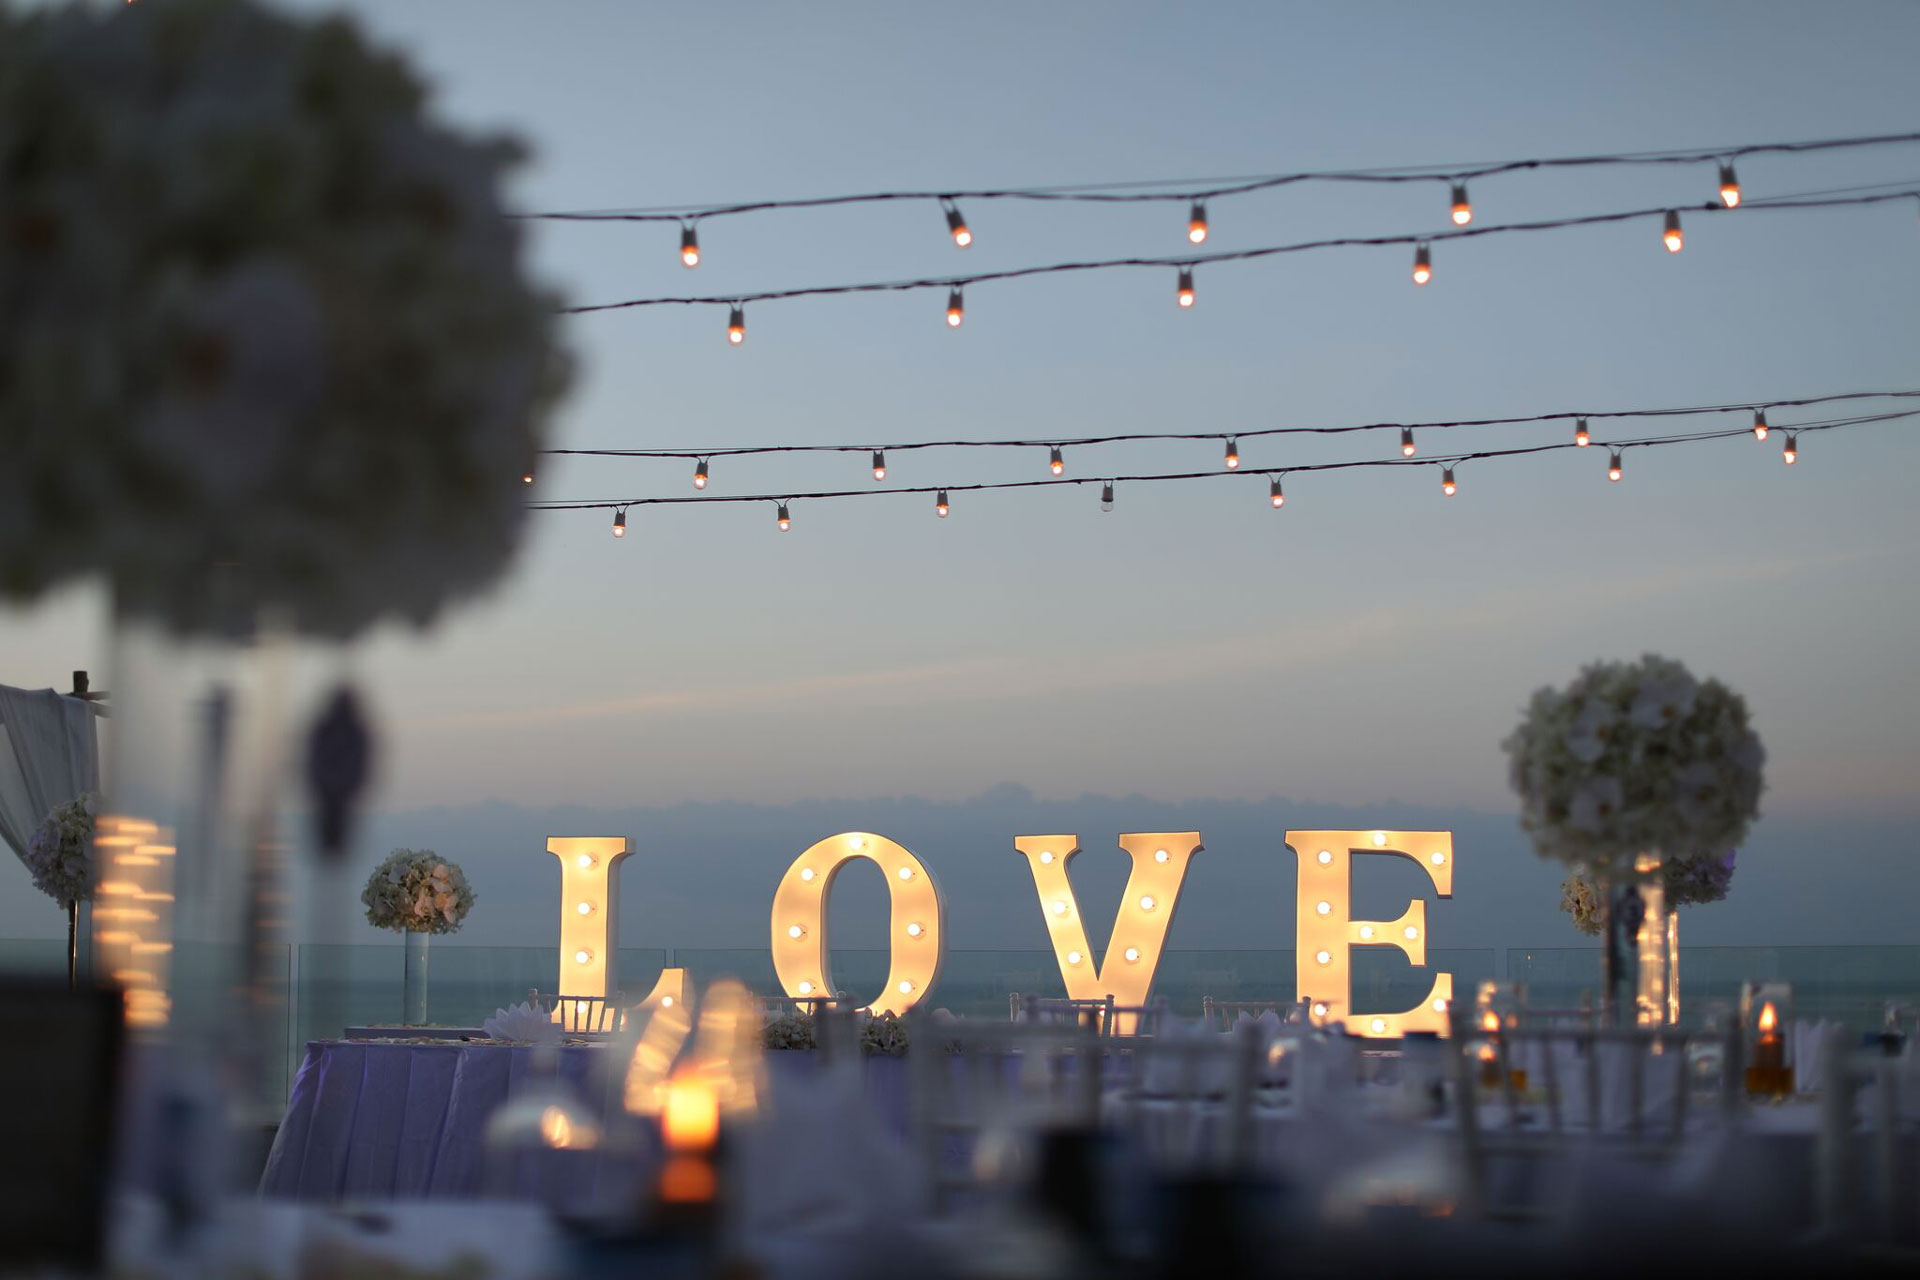 wedding decorations featuring big block letters spelling love on table